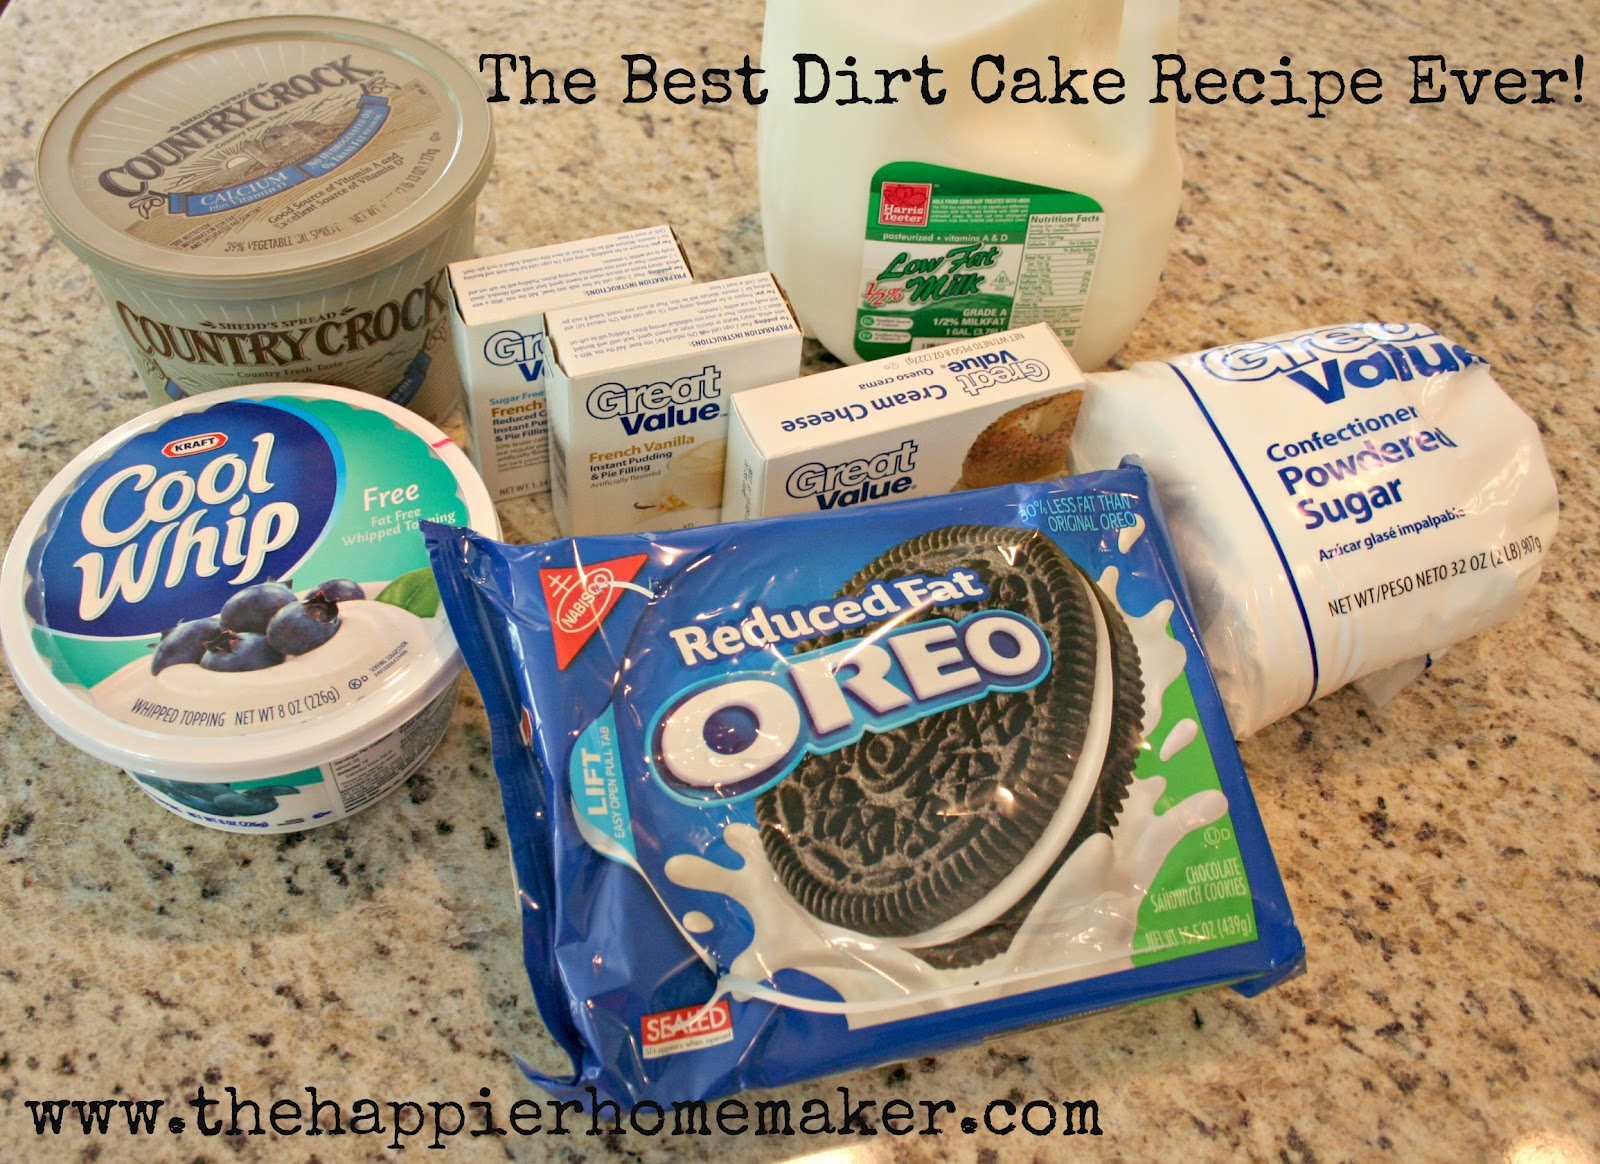 Pin Kansas Dirt Cake Recipe Foodcom 99284 On Pinterest